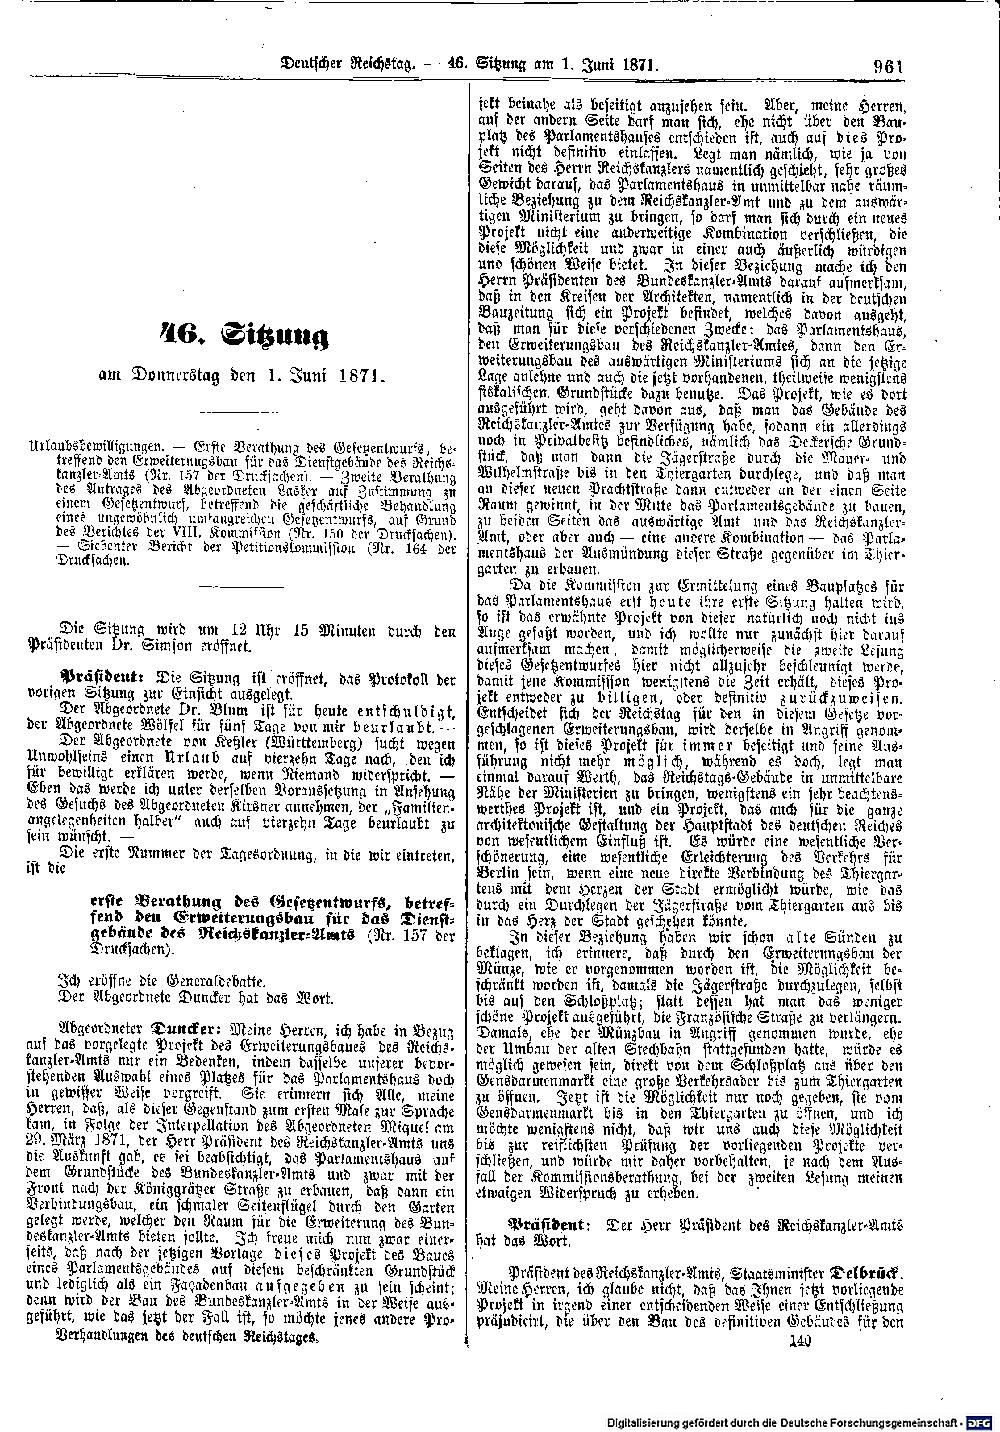 Scan of page 961